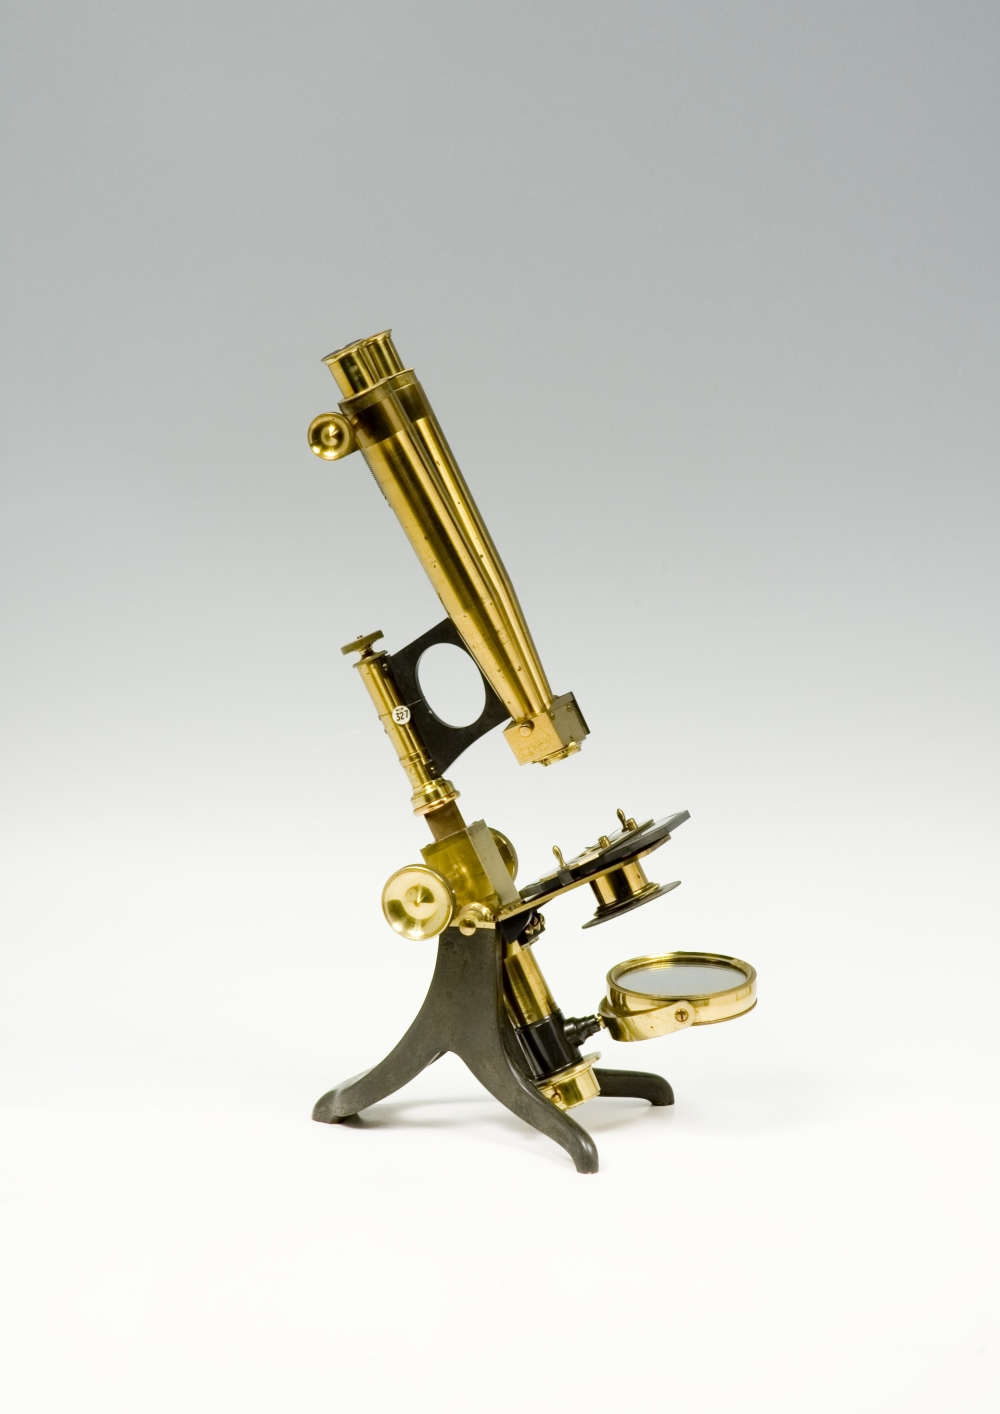 preview image for Compound Binocular Microscope, by Murray & Heath, London, c. 1870